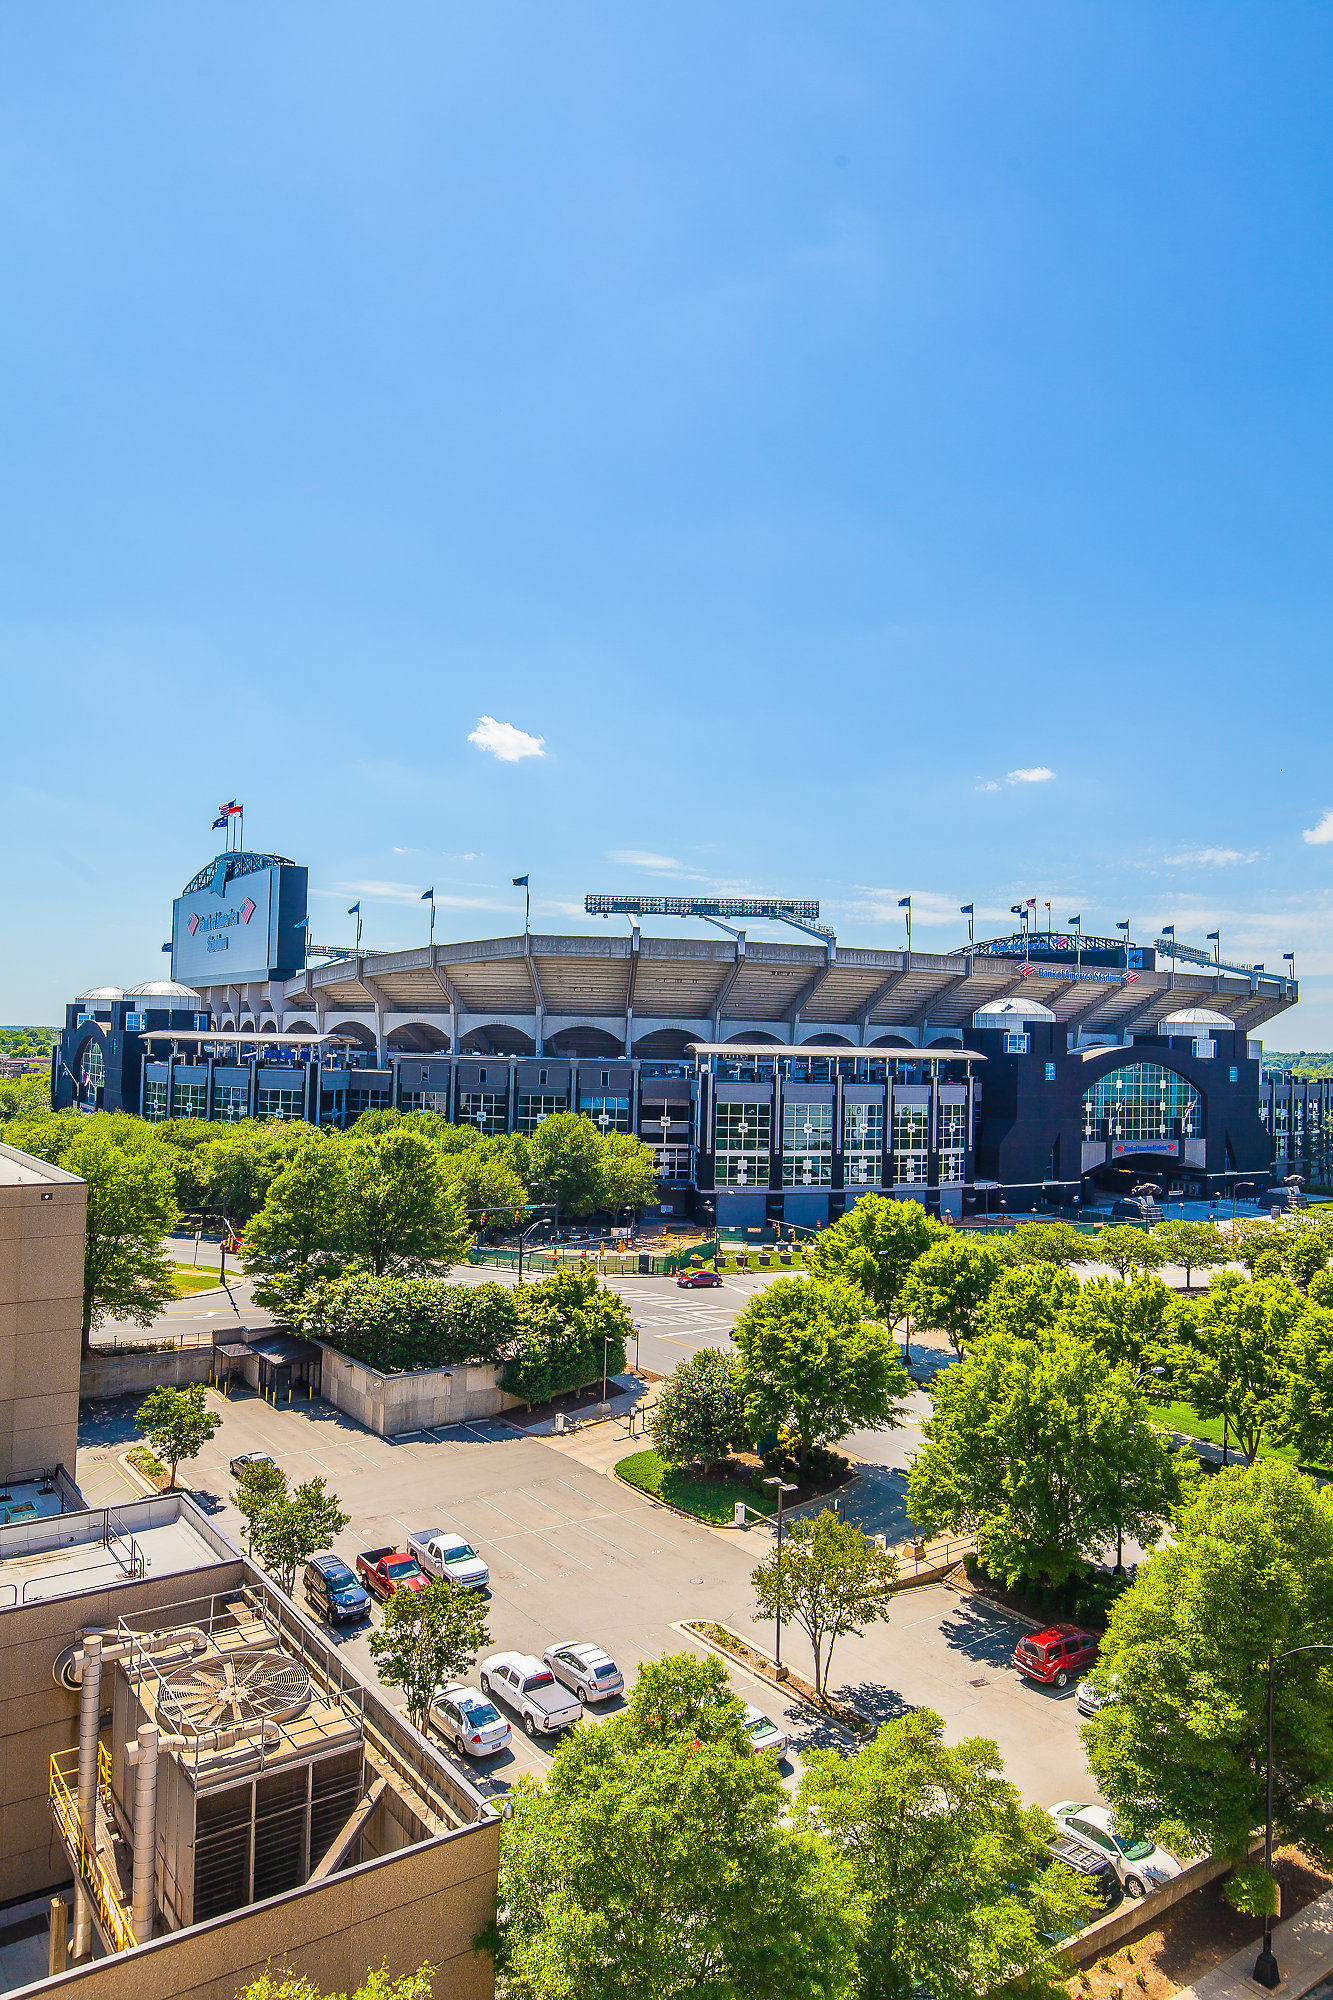 Carolina Panthers Stadium